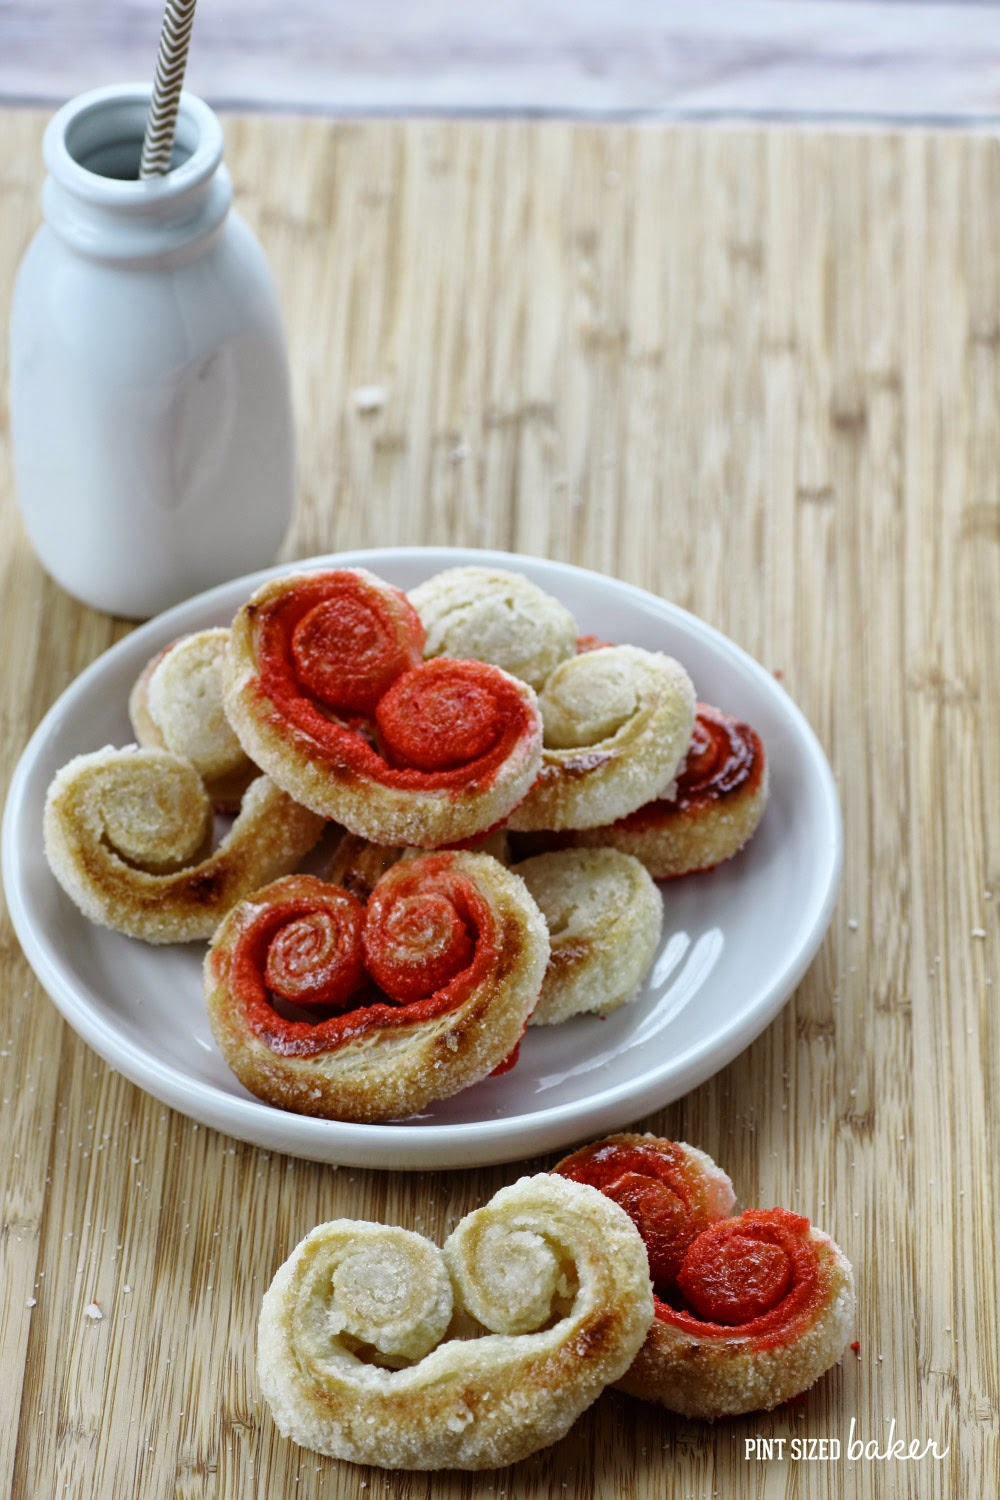 Great way to add some holiday spirit, use colored sugar in your Palmier Cookies! Awesome Idea!